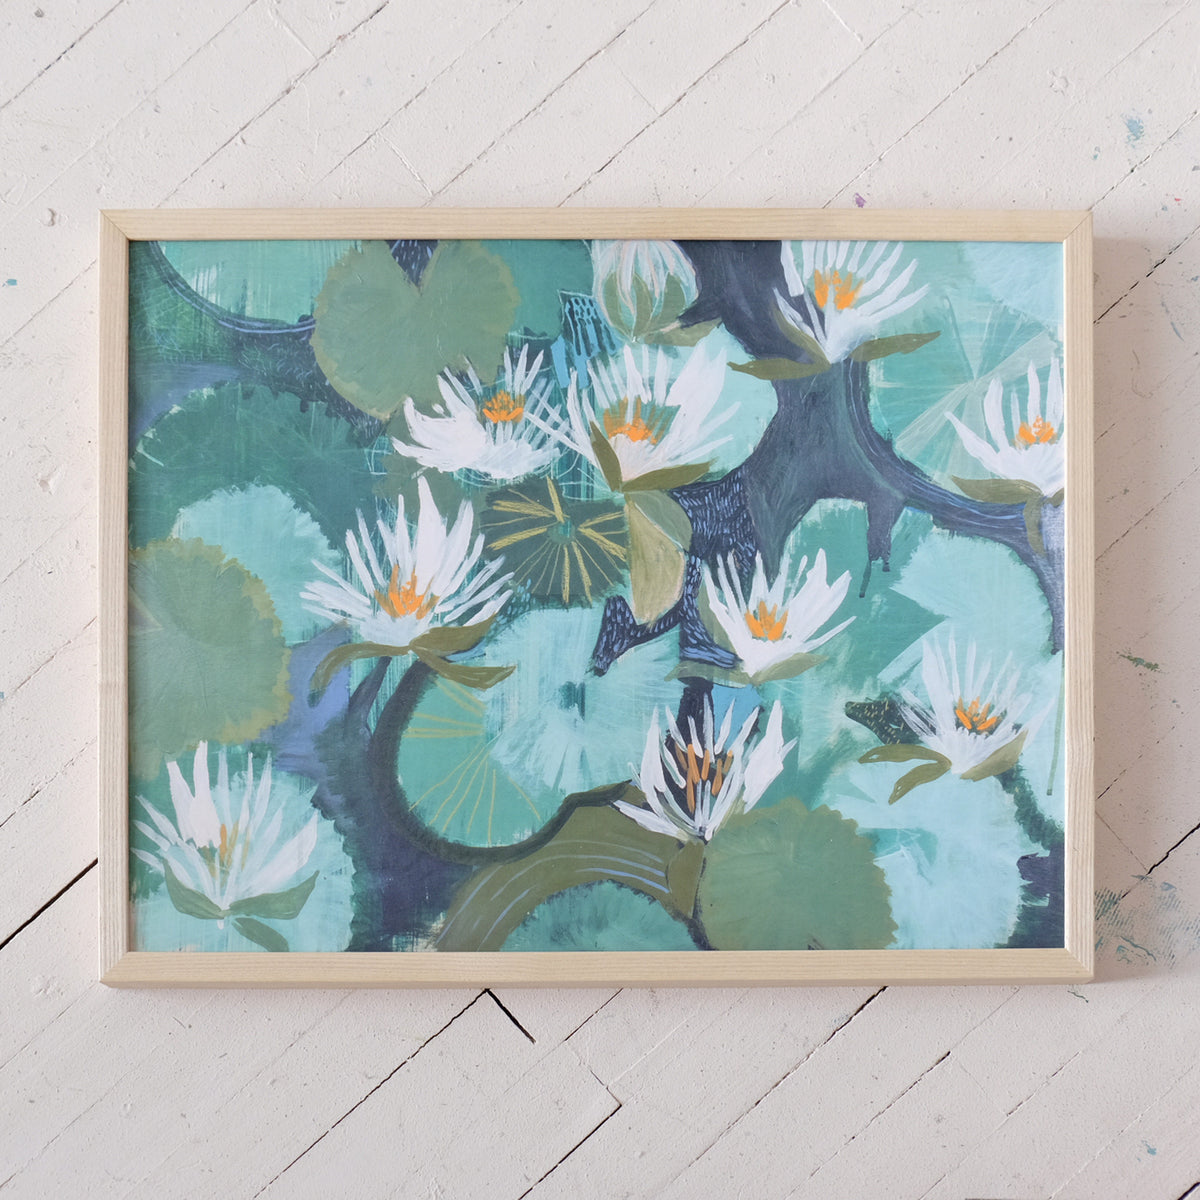 Aquatic Plant No. 18 - Print